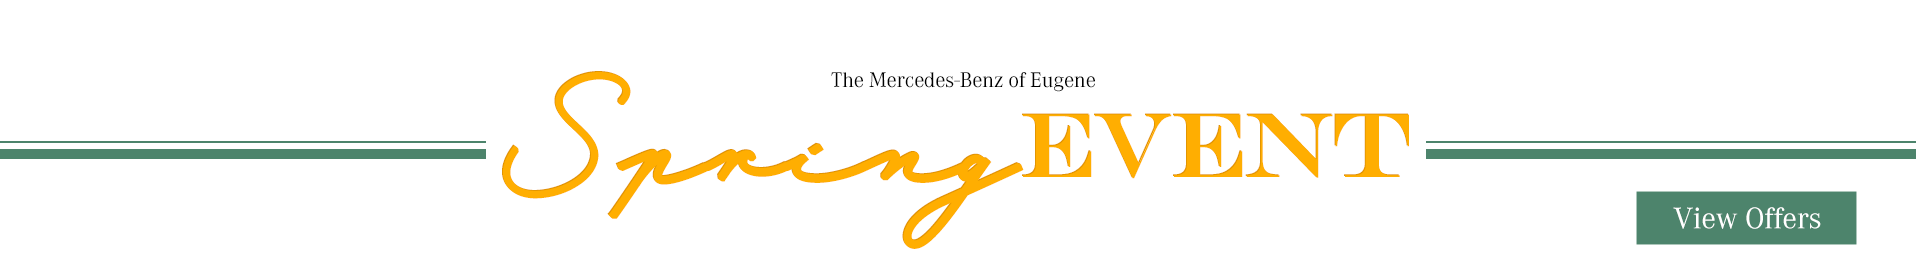 Mercedes-benz spring event offers